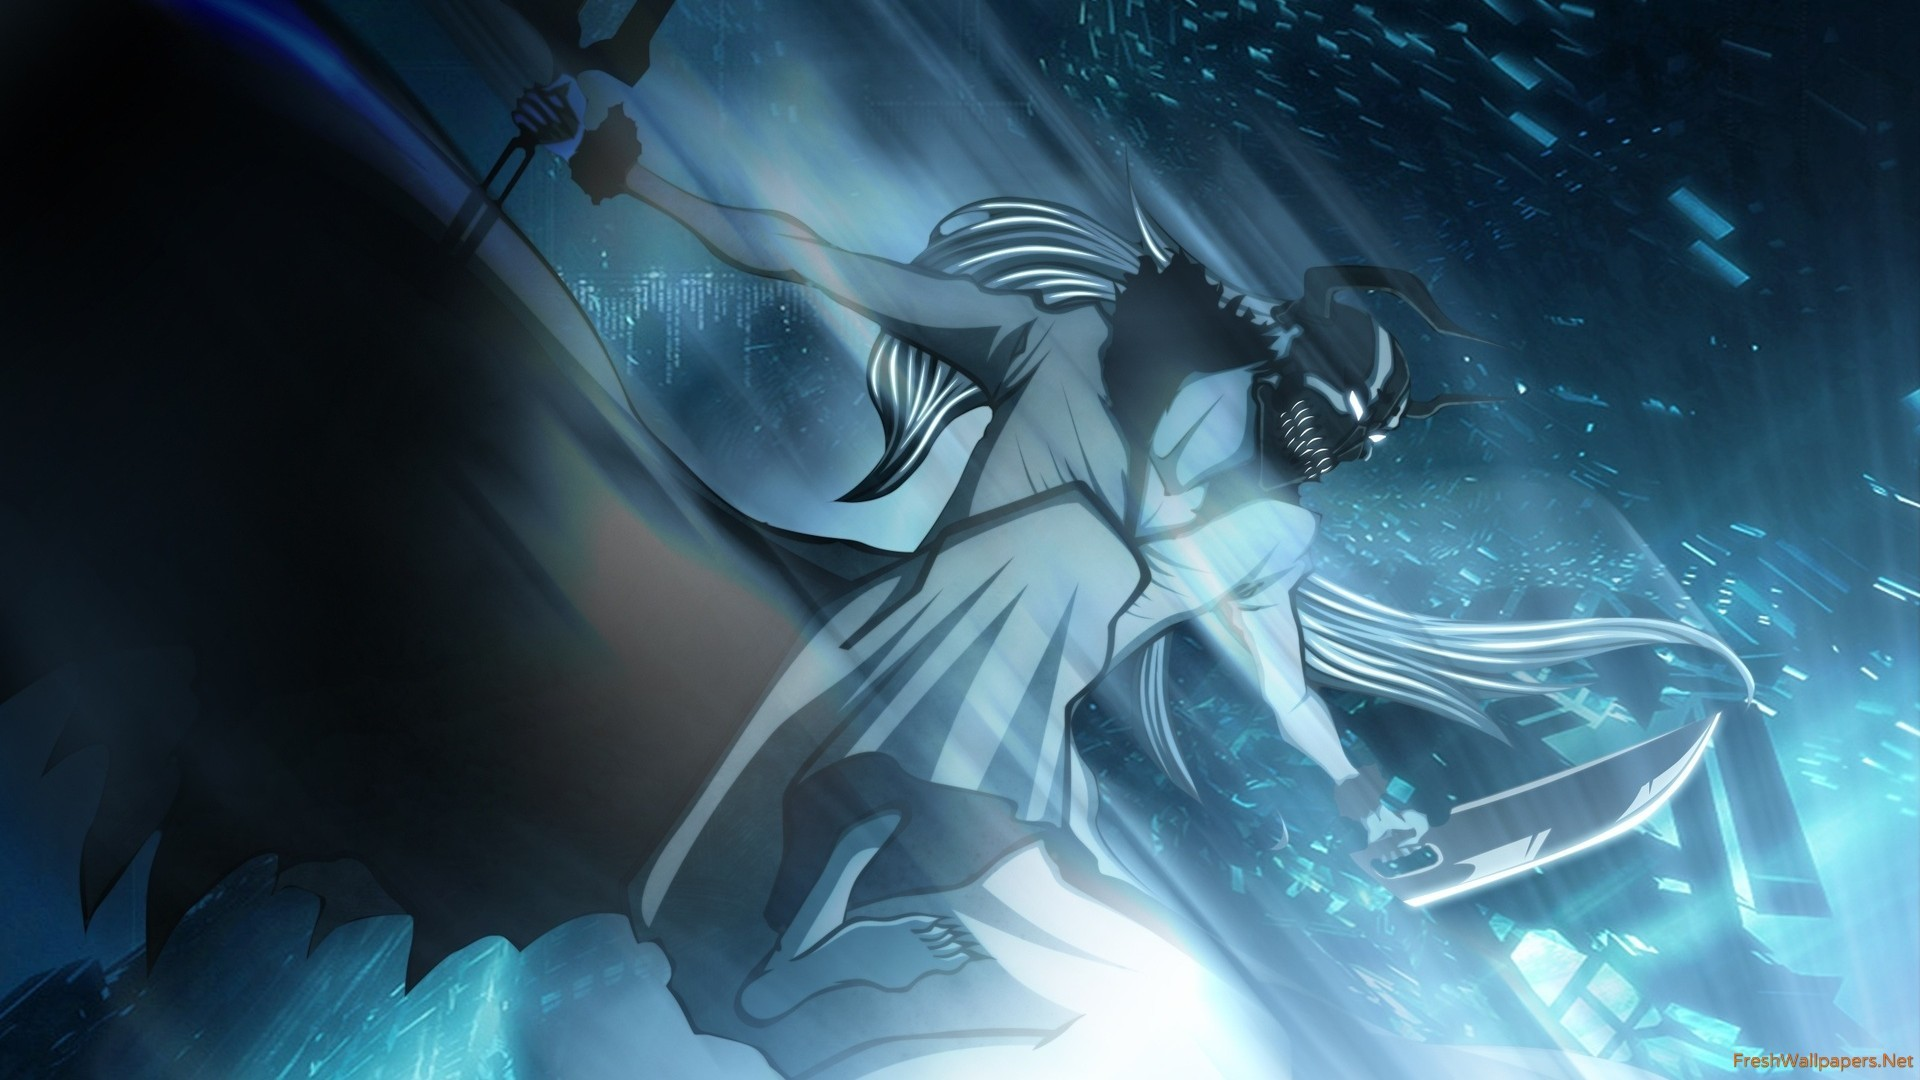 bleach wallpaper 1920 x 1080 - photo #10